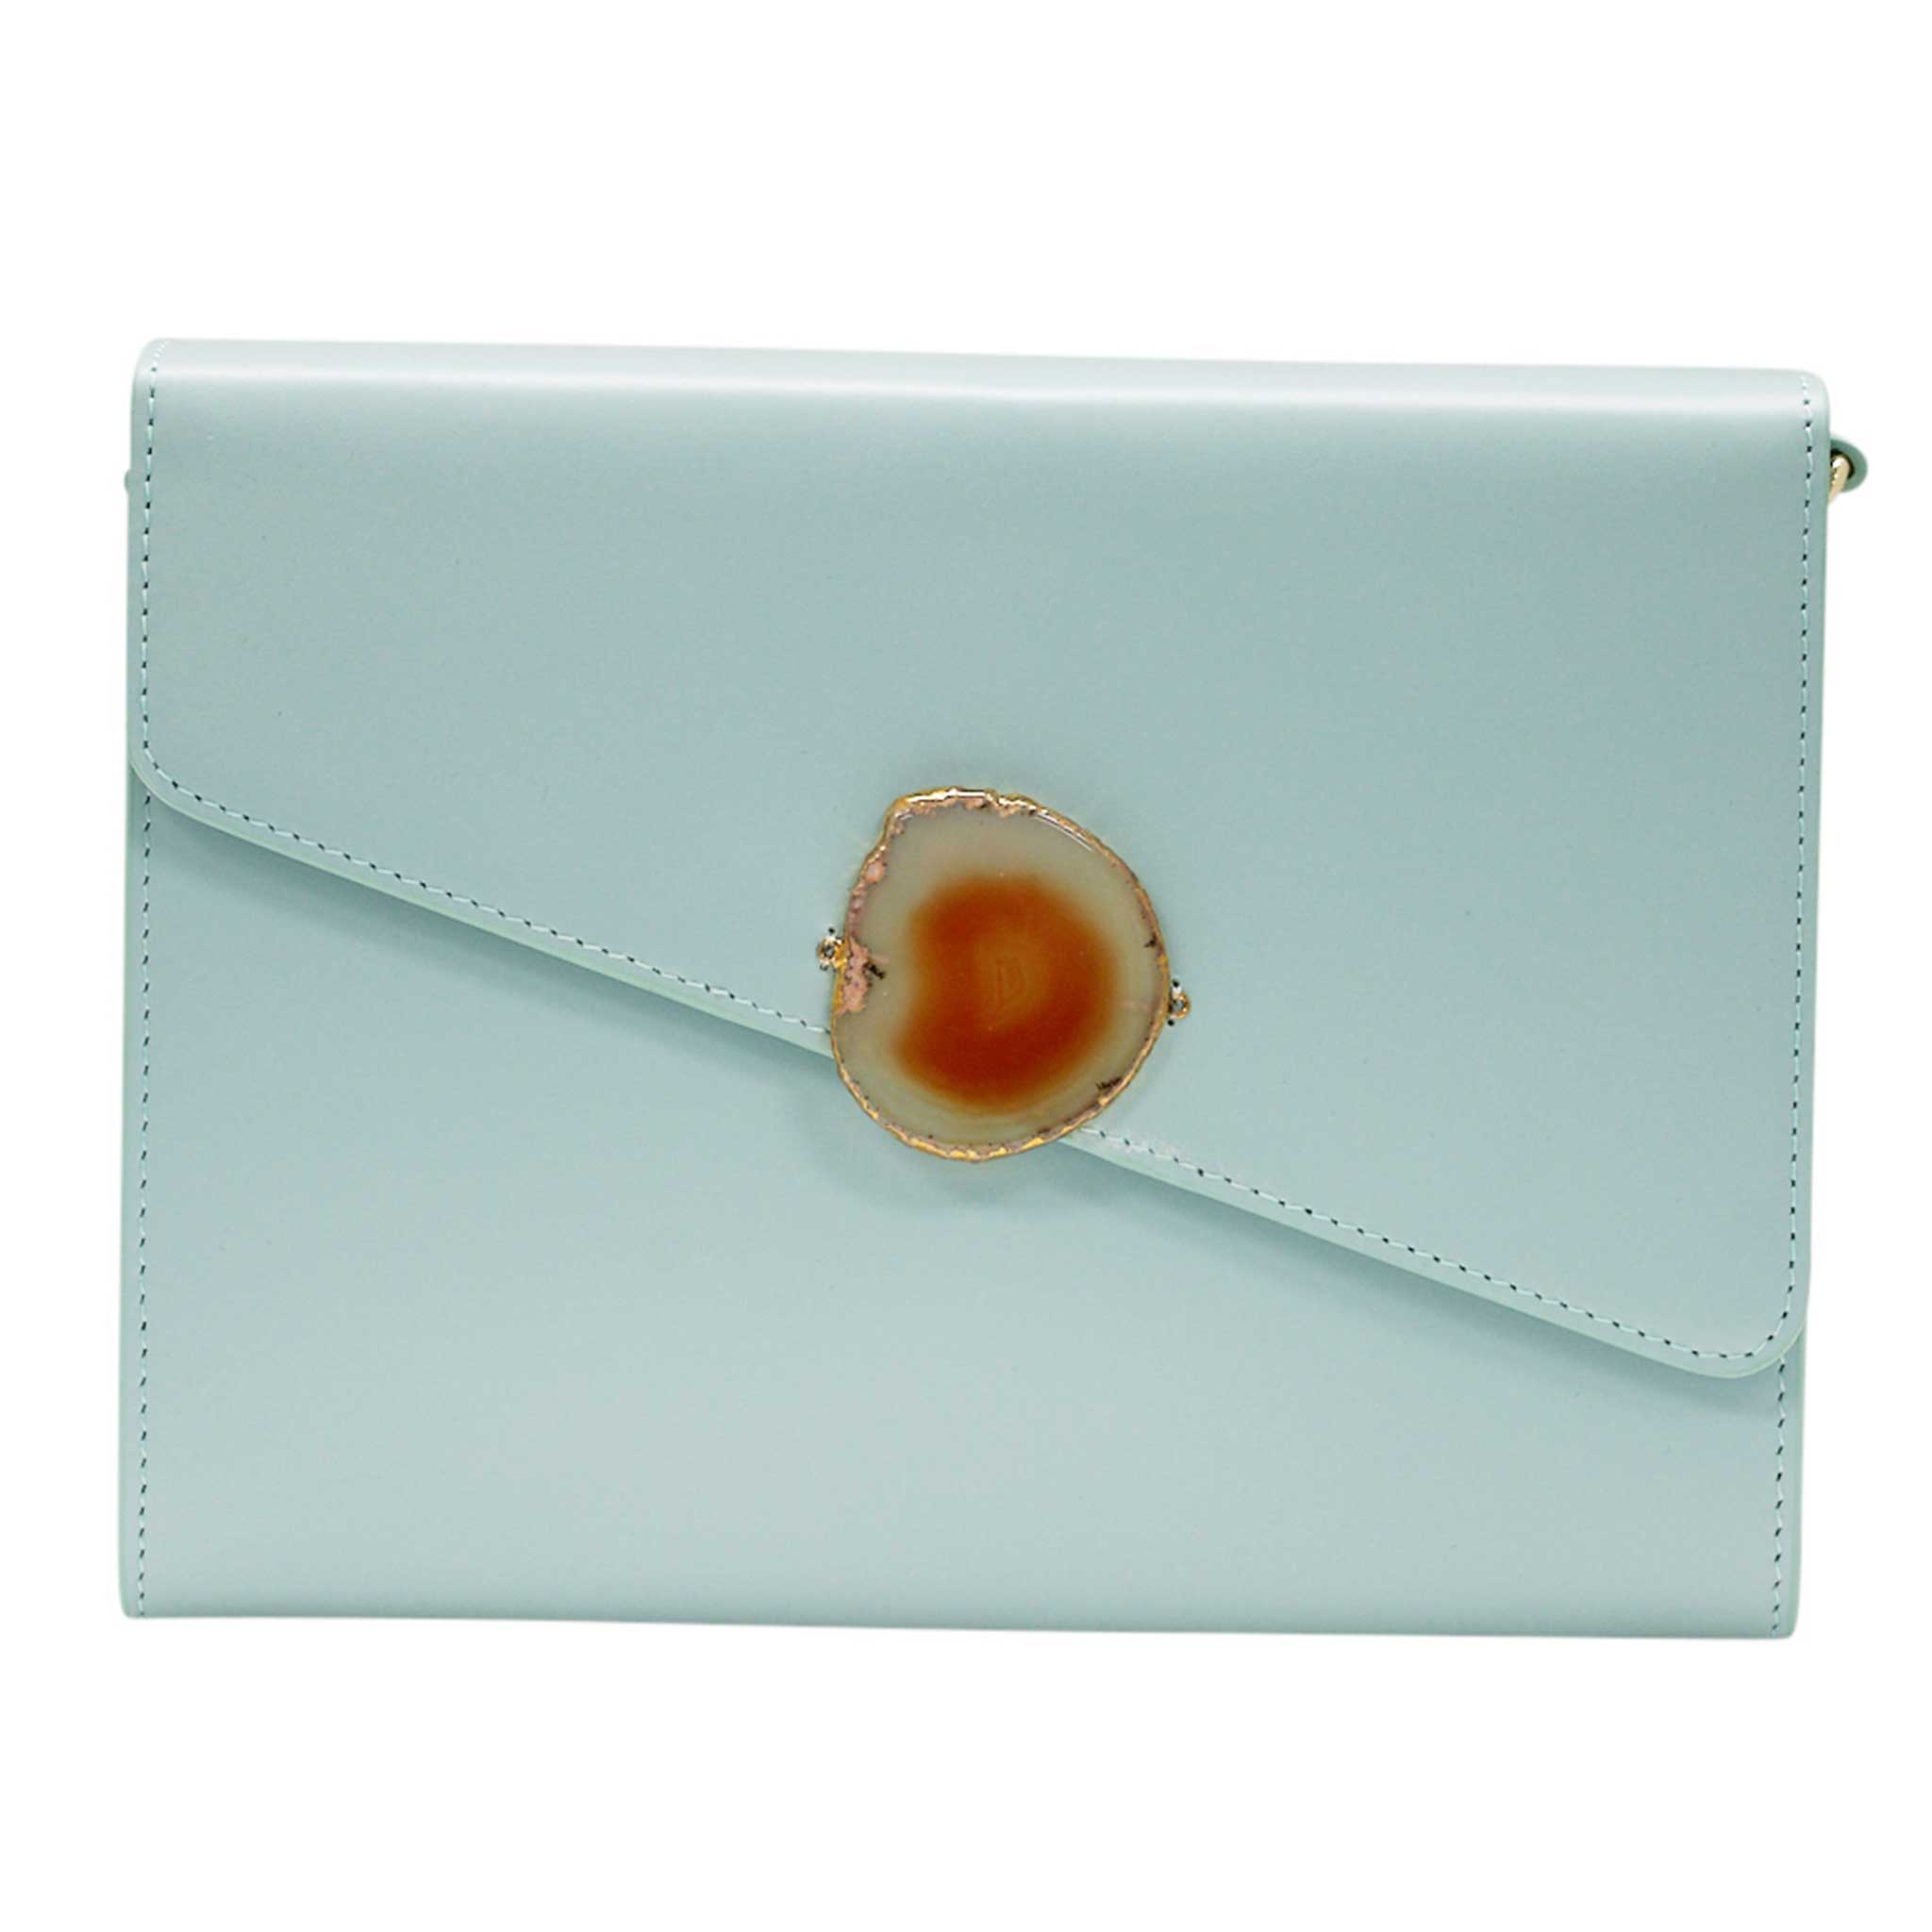 LOVED BAG - MOONSTONE WHITE LEATHER WITH BROWN AGATE - 1.02.001.008